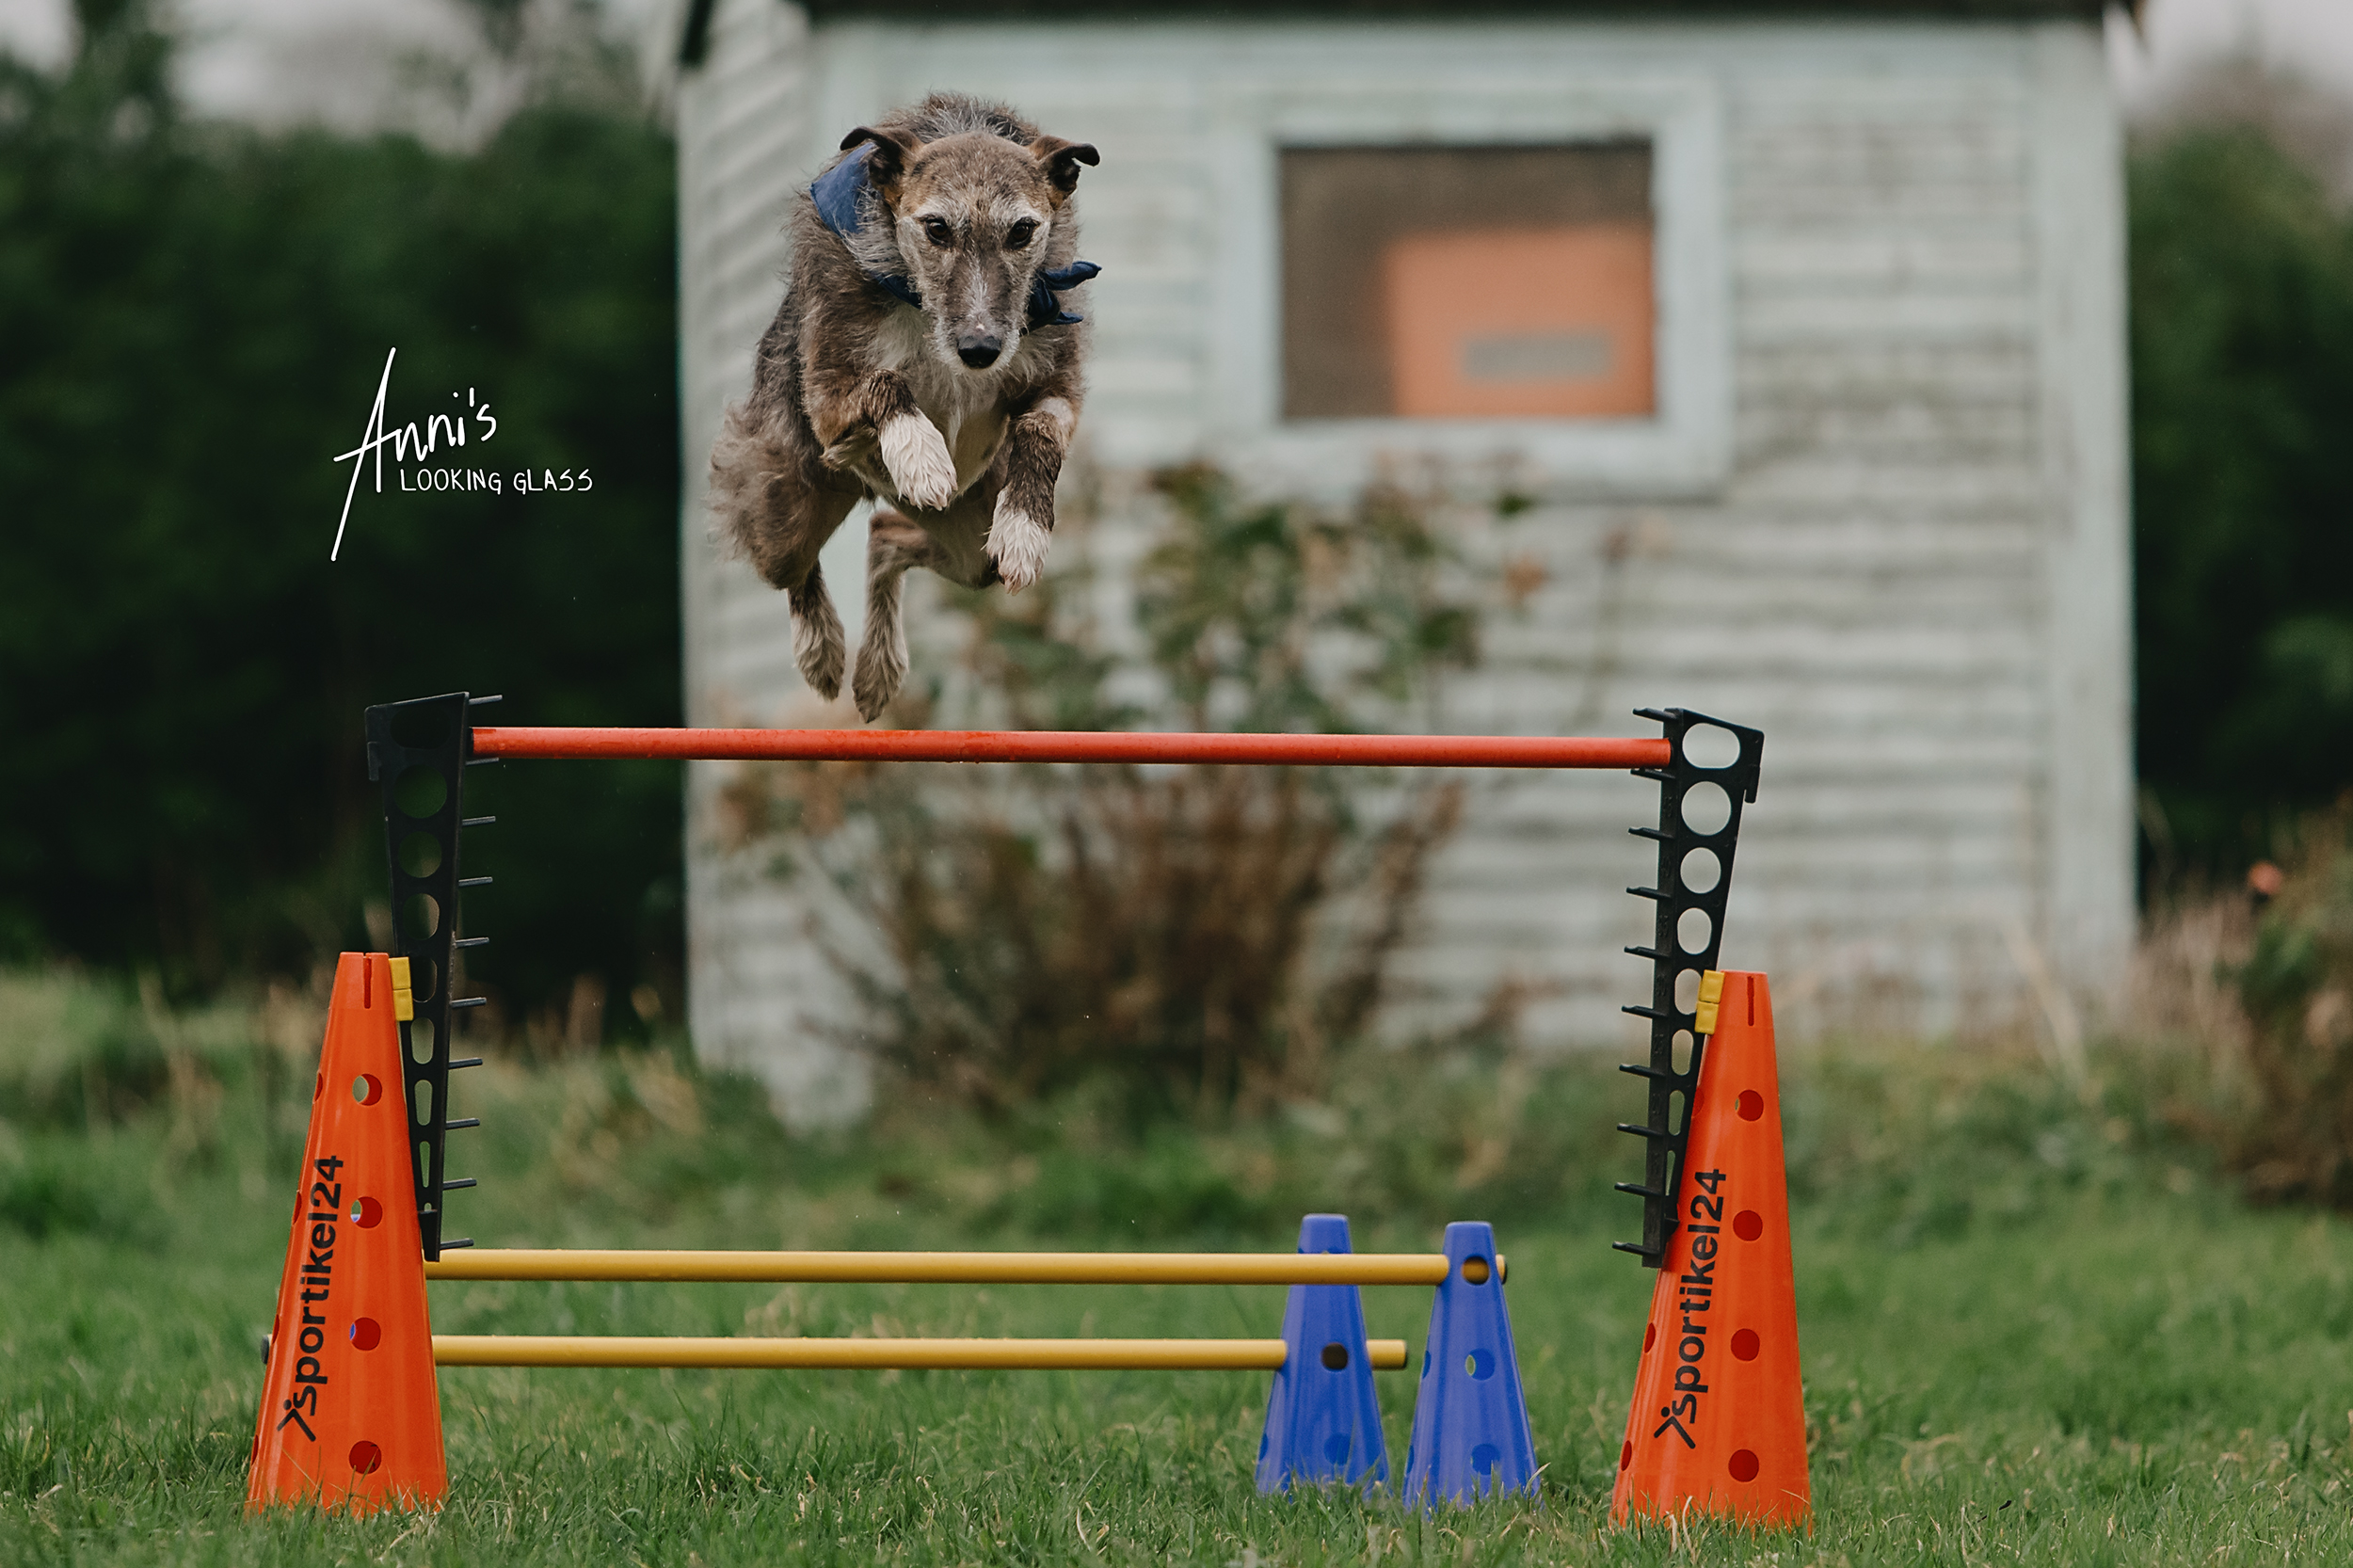 A sighthound takes a big leap across canine agility obstacles